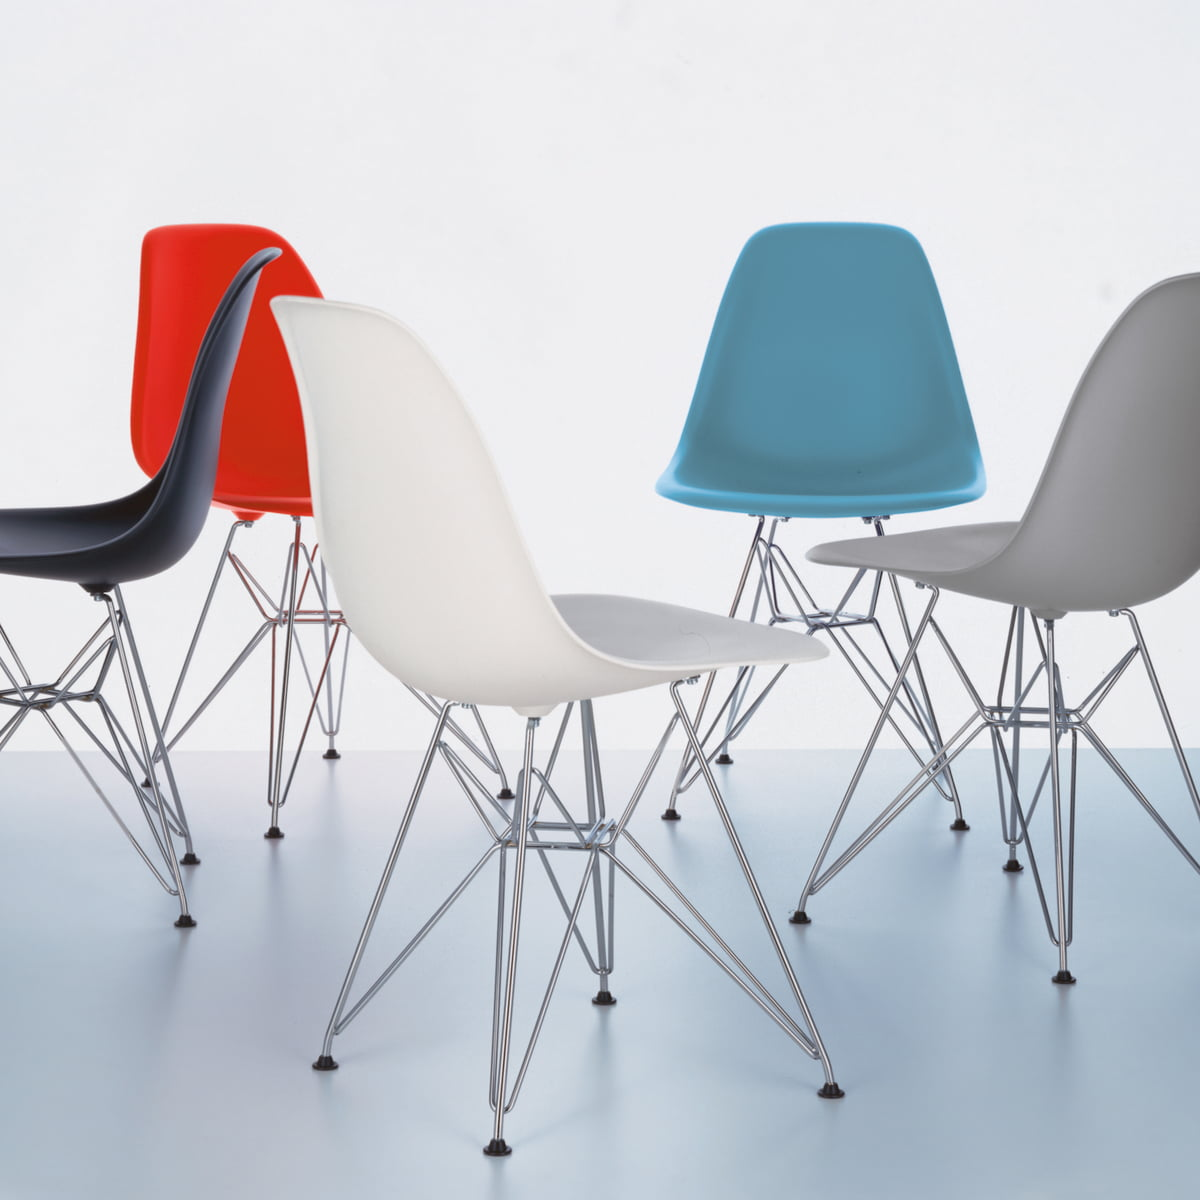 Vitra Dsr Plastic Chair Vitra DSR Eames Plastic Side Chair in our